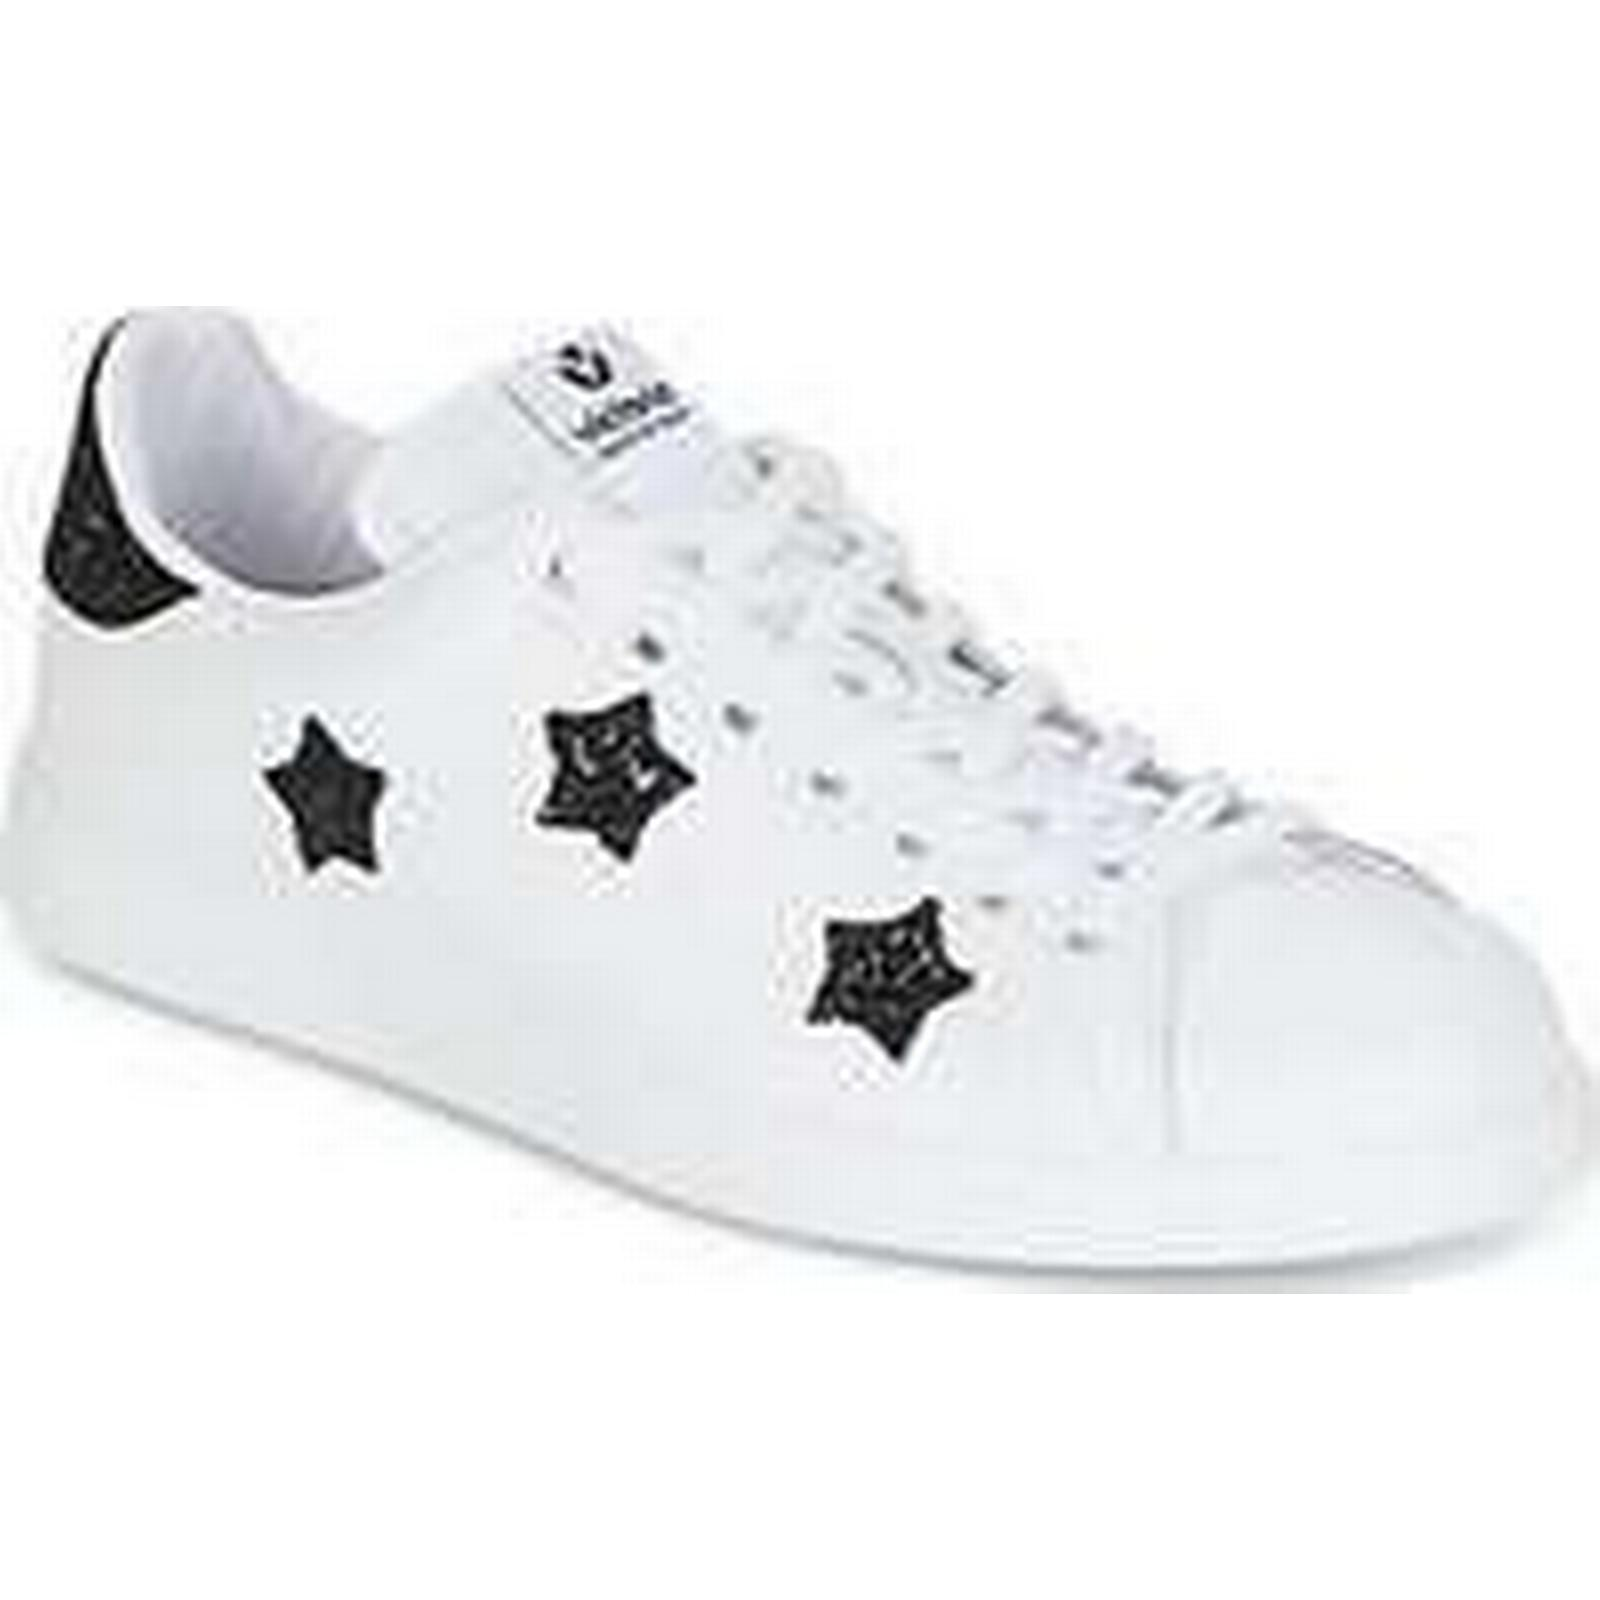 Spartoo.co.uk Victoria DEPORTIVO BASKET in APLICACION women's Shoes (Trainers) in BASKET White 90cf27